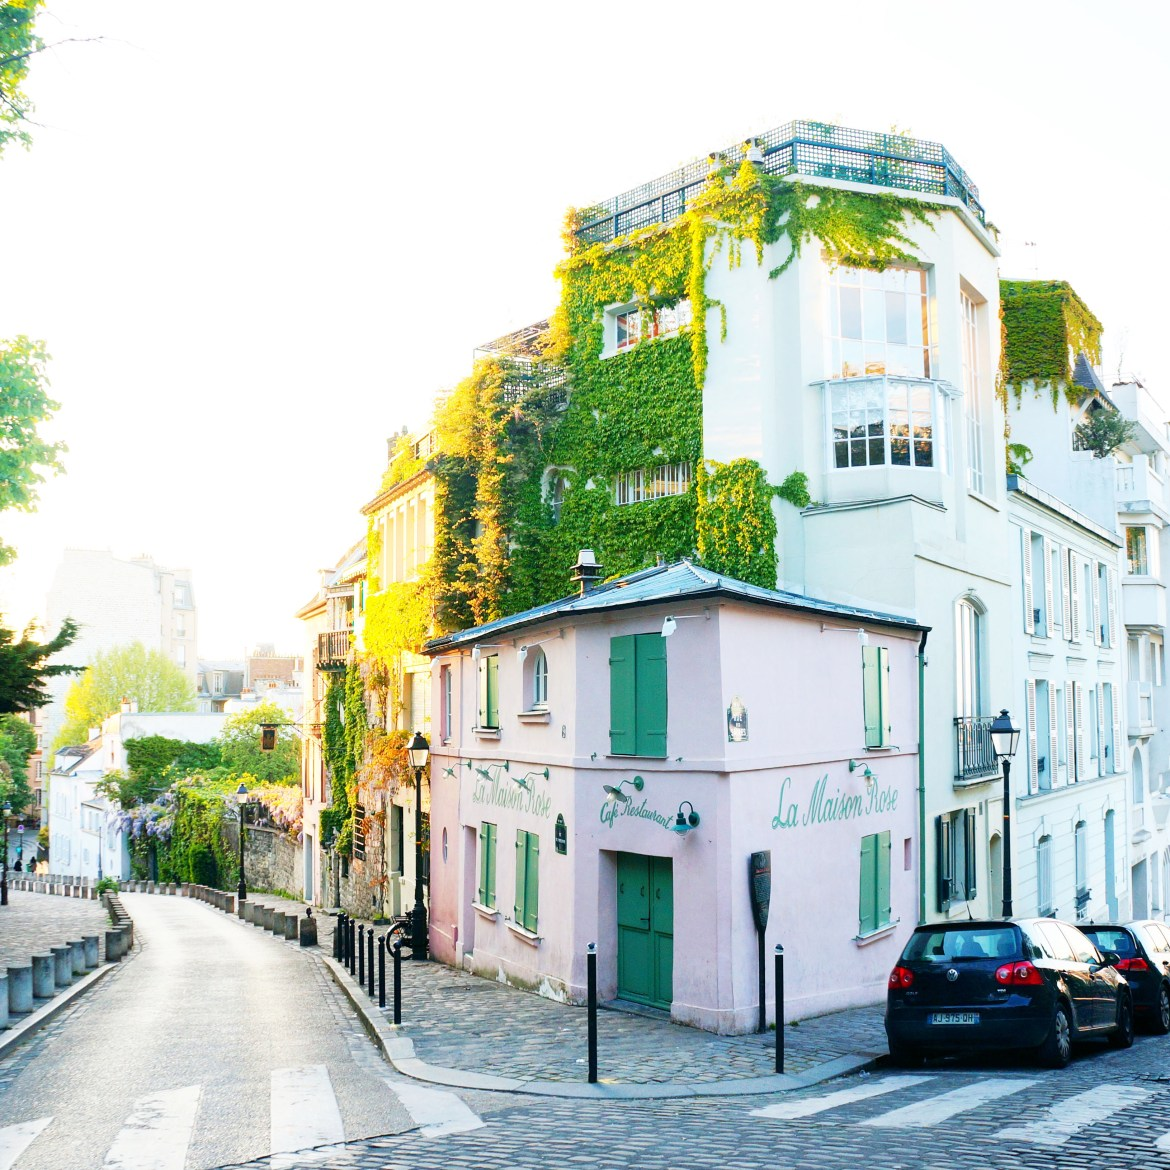 Top 8 Most Instagrammable Spots in Paris